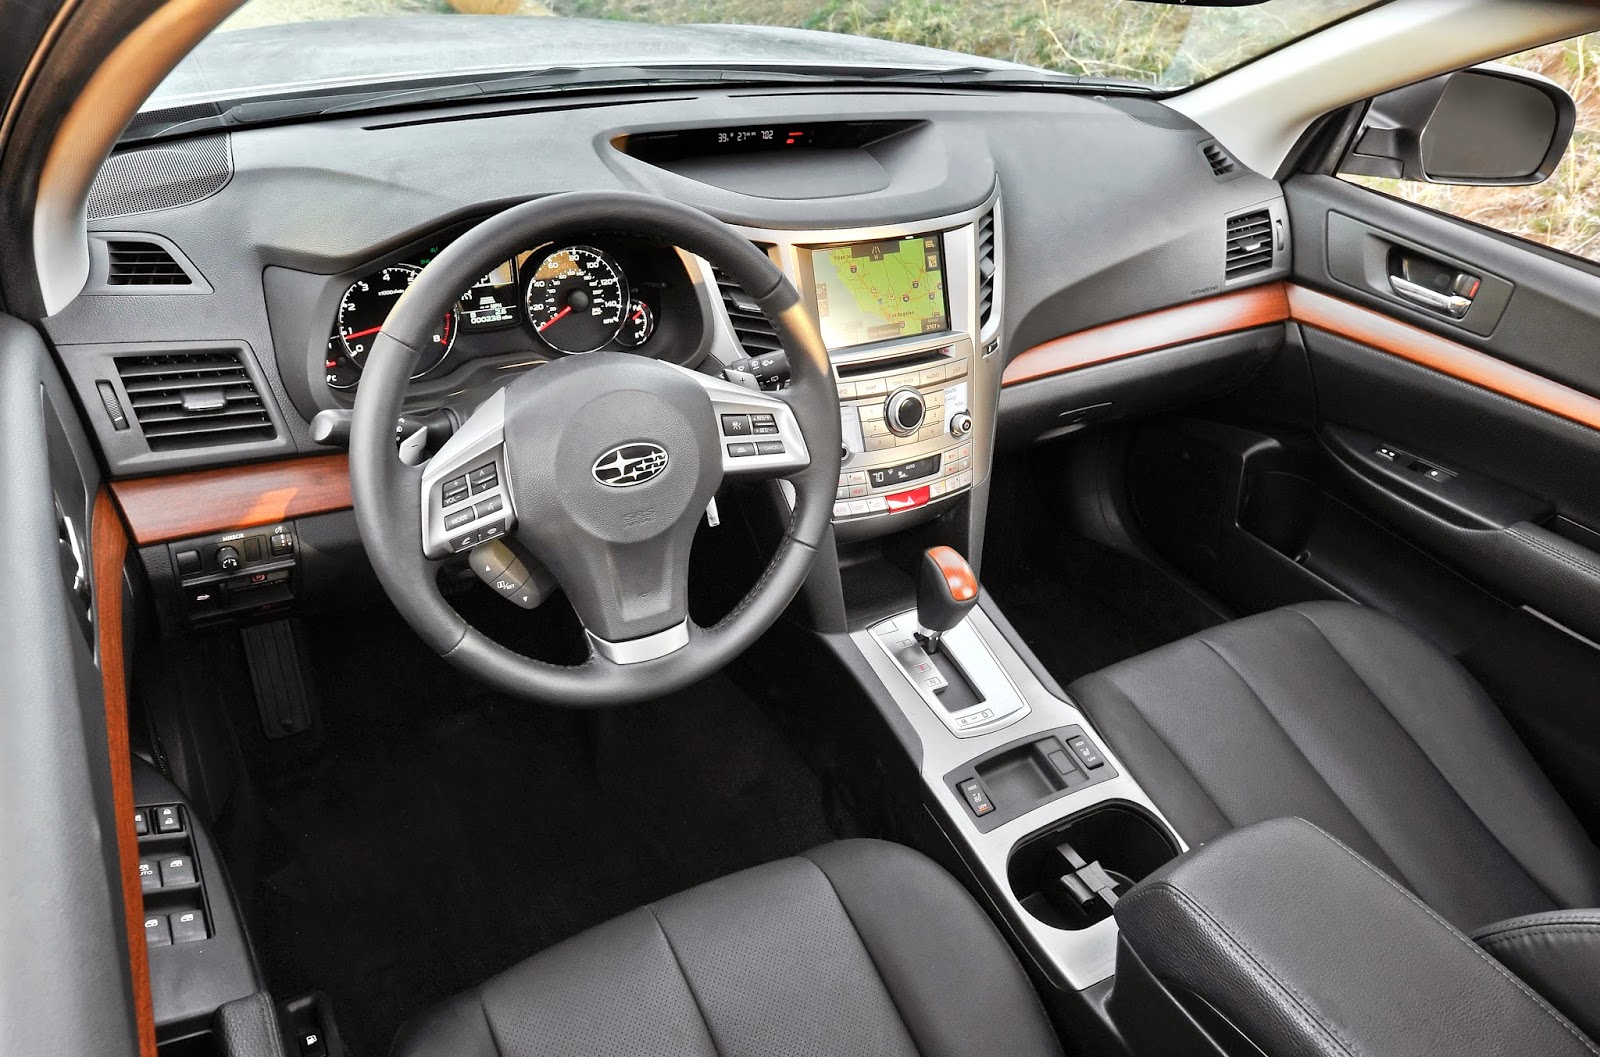 Interior view of 2014 Subaru Outback